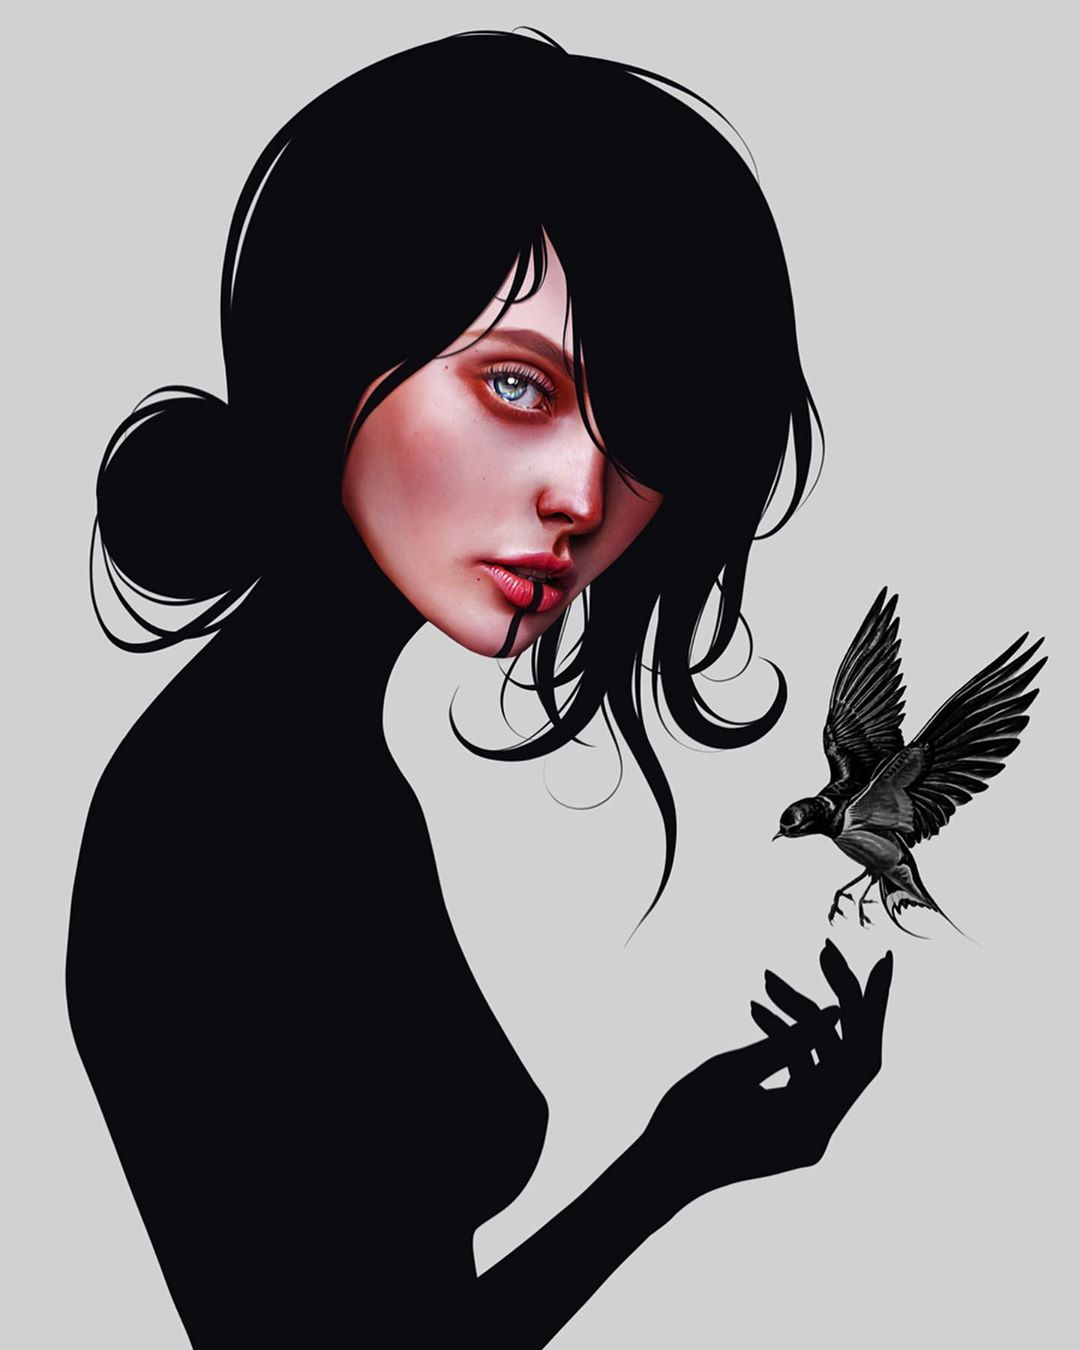 26-Year-Old Digital Artist With Model Looks Creates Stunning Female Illustrations On Tablet 4